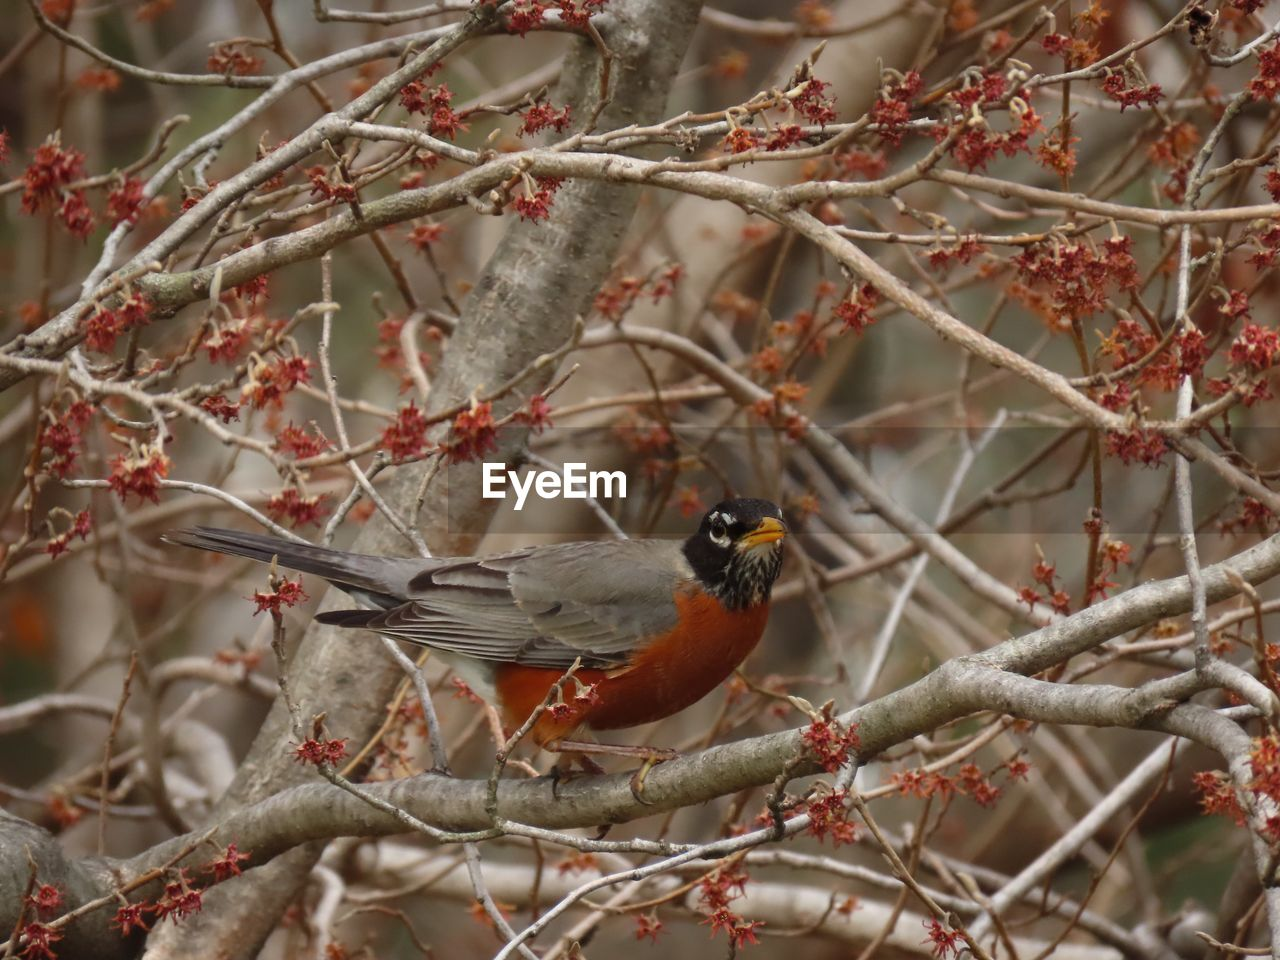 bird, vertebrate, perching, animal wildlife, tree, animal themes, animals in the wild, one animal, animal, branch, plant, day, focus on foreground, no people, selective focus, nature, red, beauty in nature, outdoors, close-up